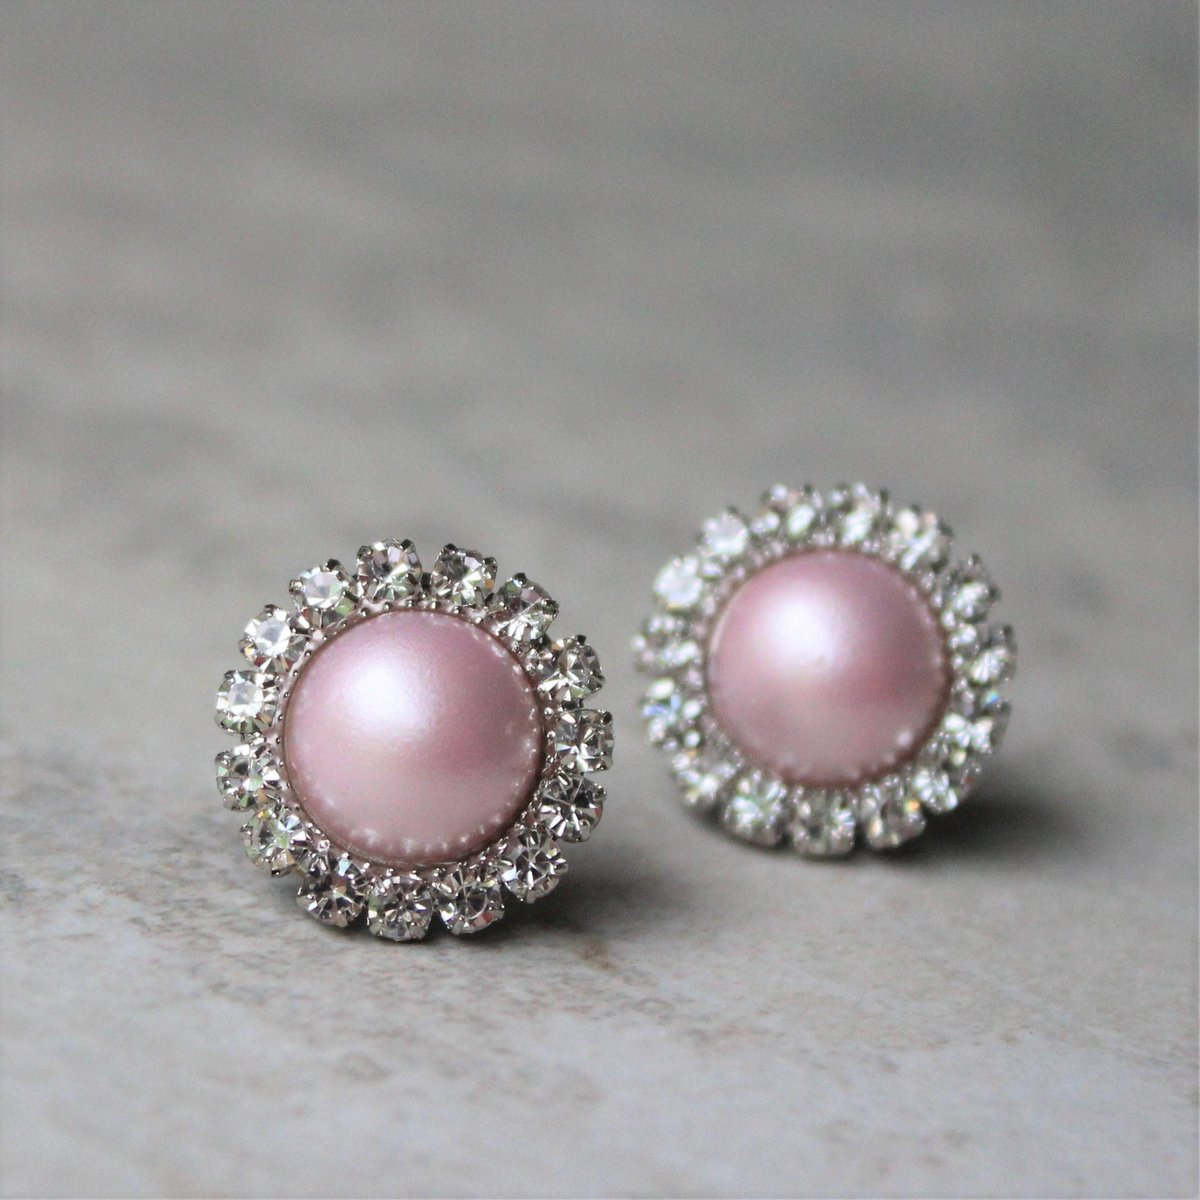 Petal Perceptions On Twitter Pink Earrings Pearl Bridesmaid Pale Gifts Earring Gift